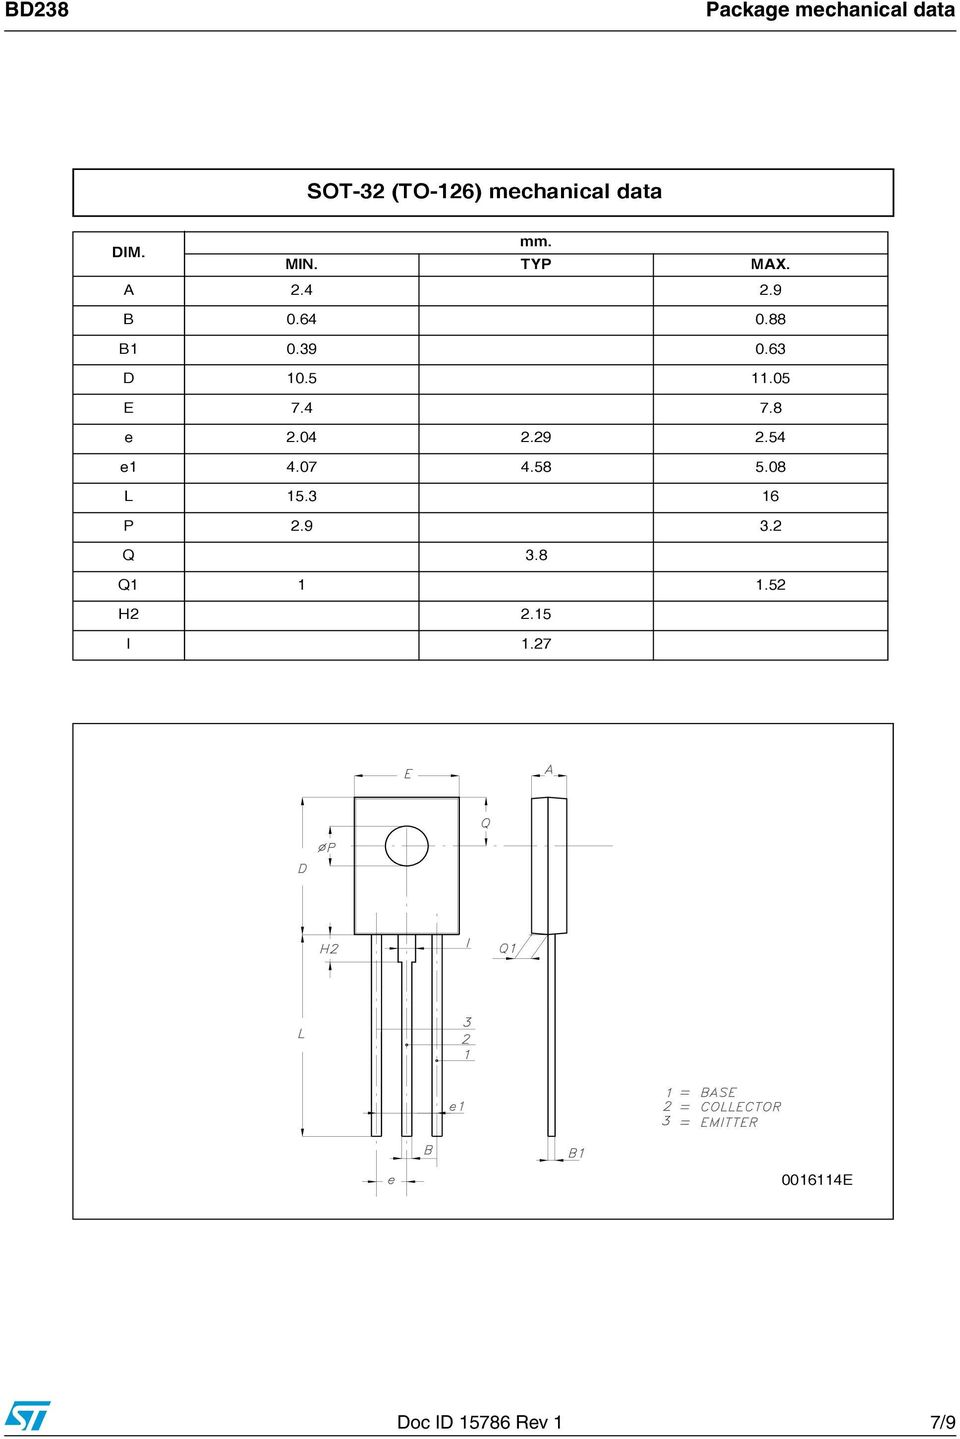 Bd238 Low Voltage Pnp Power Transistor Features Applications Bta41 600b Datasheet Application Note Electronic Circuit Projects 05 E 74 78 204 229 254 E1 407 458 508 L 153 16 P